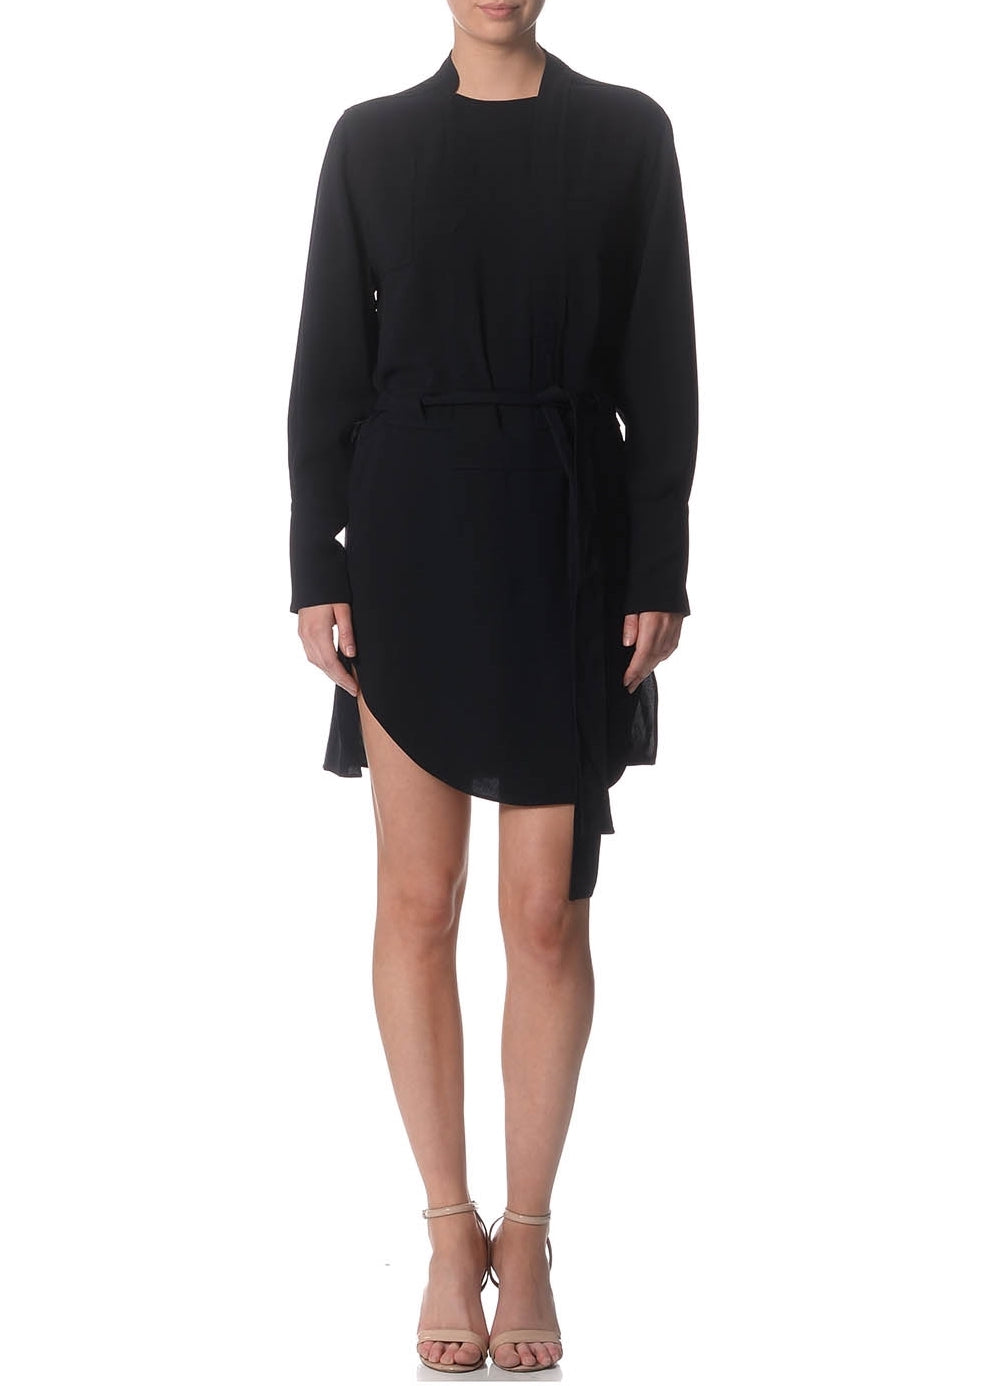 Janet Dark Navy Trench Dress